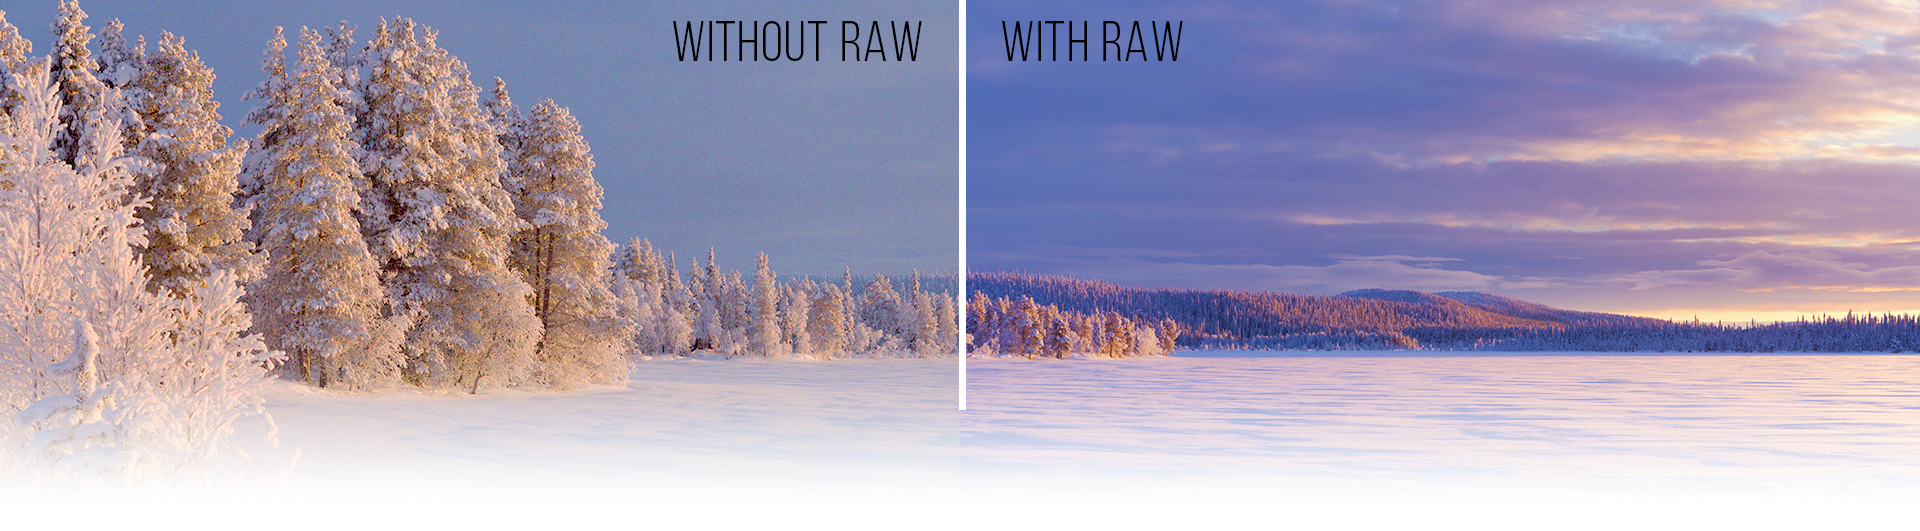 Photography Tips for Perfect Snowy Photos: Using RAW